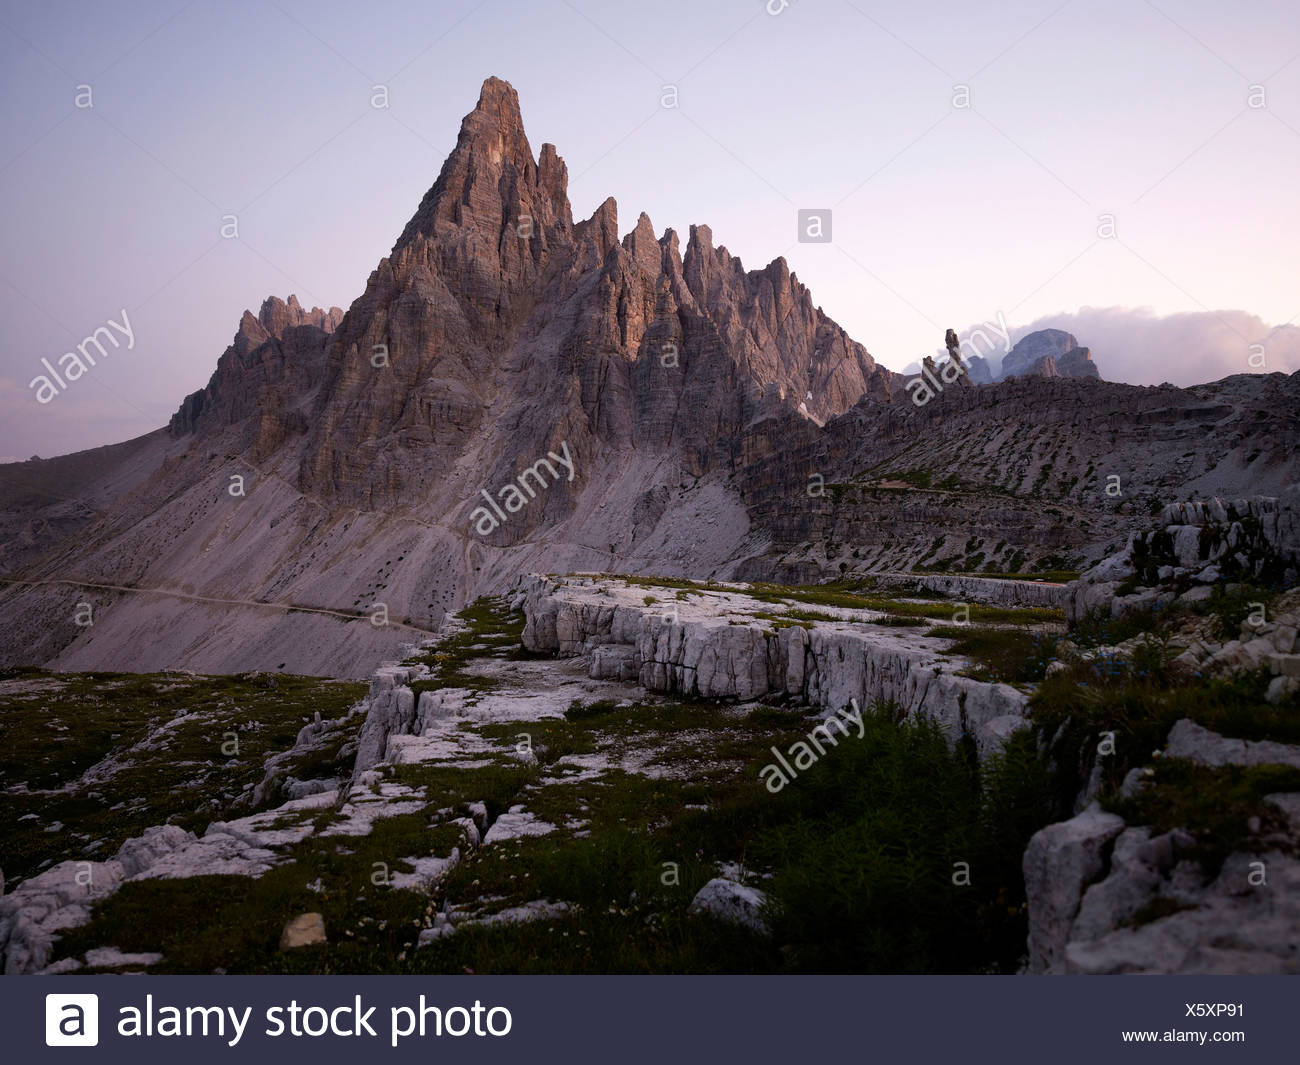 Mt Paternkofel at dawn, Sexten Dolomites, Dolomiti di Sesto National Park, Hochpustertal, High Puster Valley, South Tyrol, Italy - Stock Image